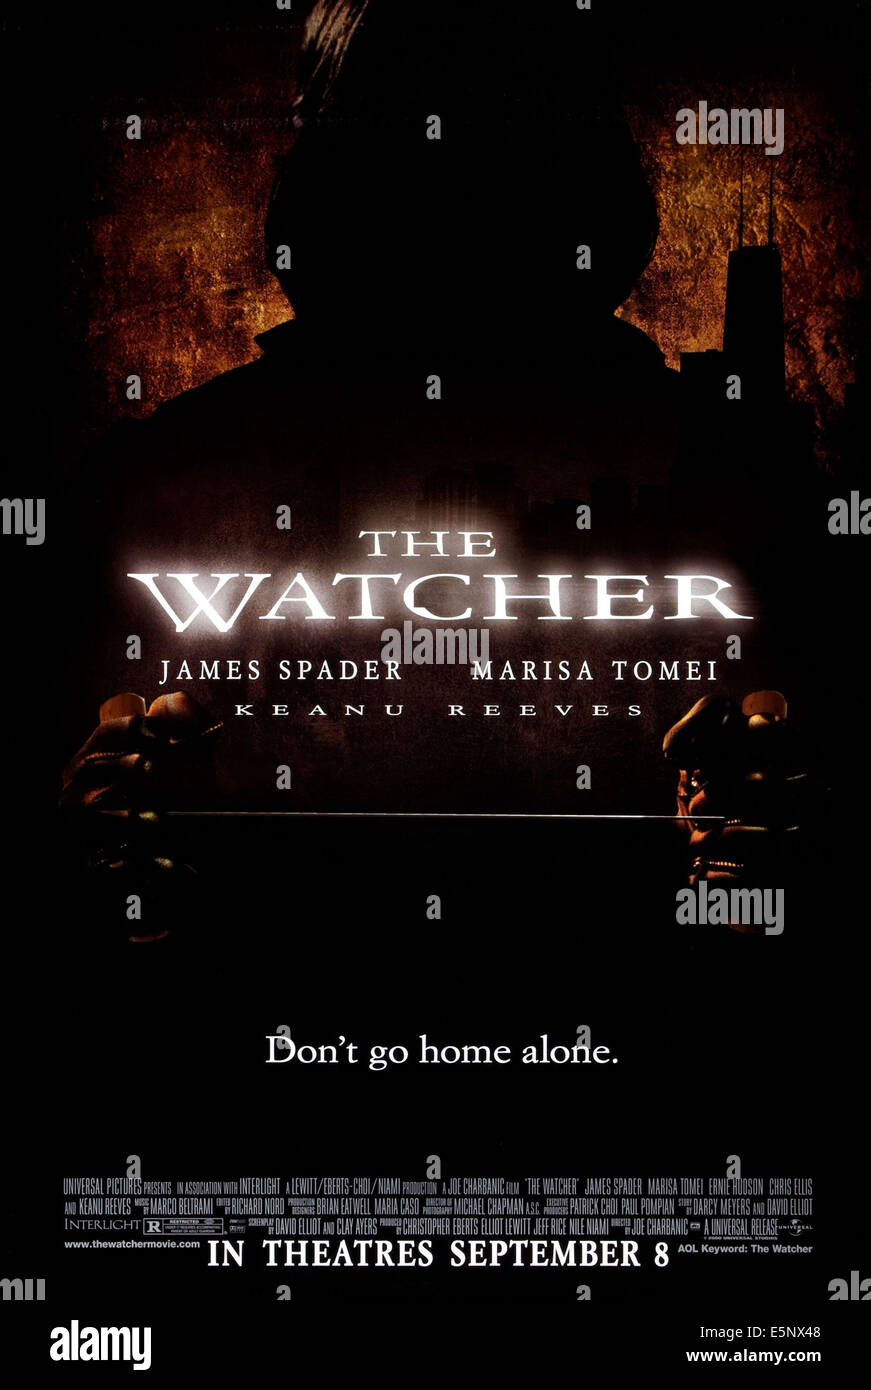 THE WATCHER, US advance poster art, 2000, © Universal/courtesy Everett Collection - Stock Image